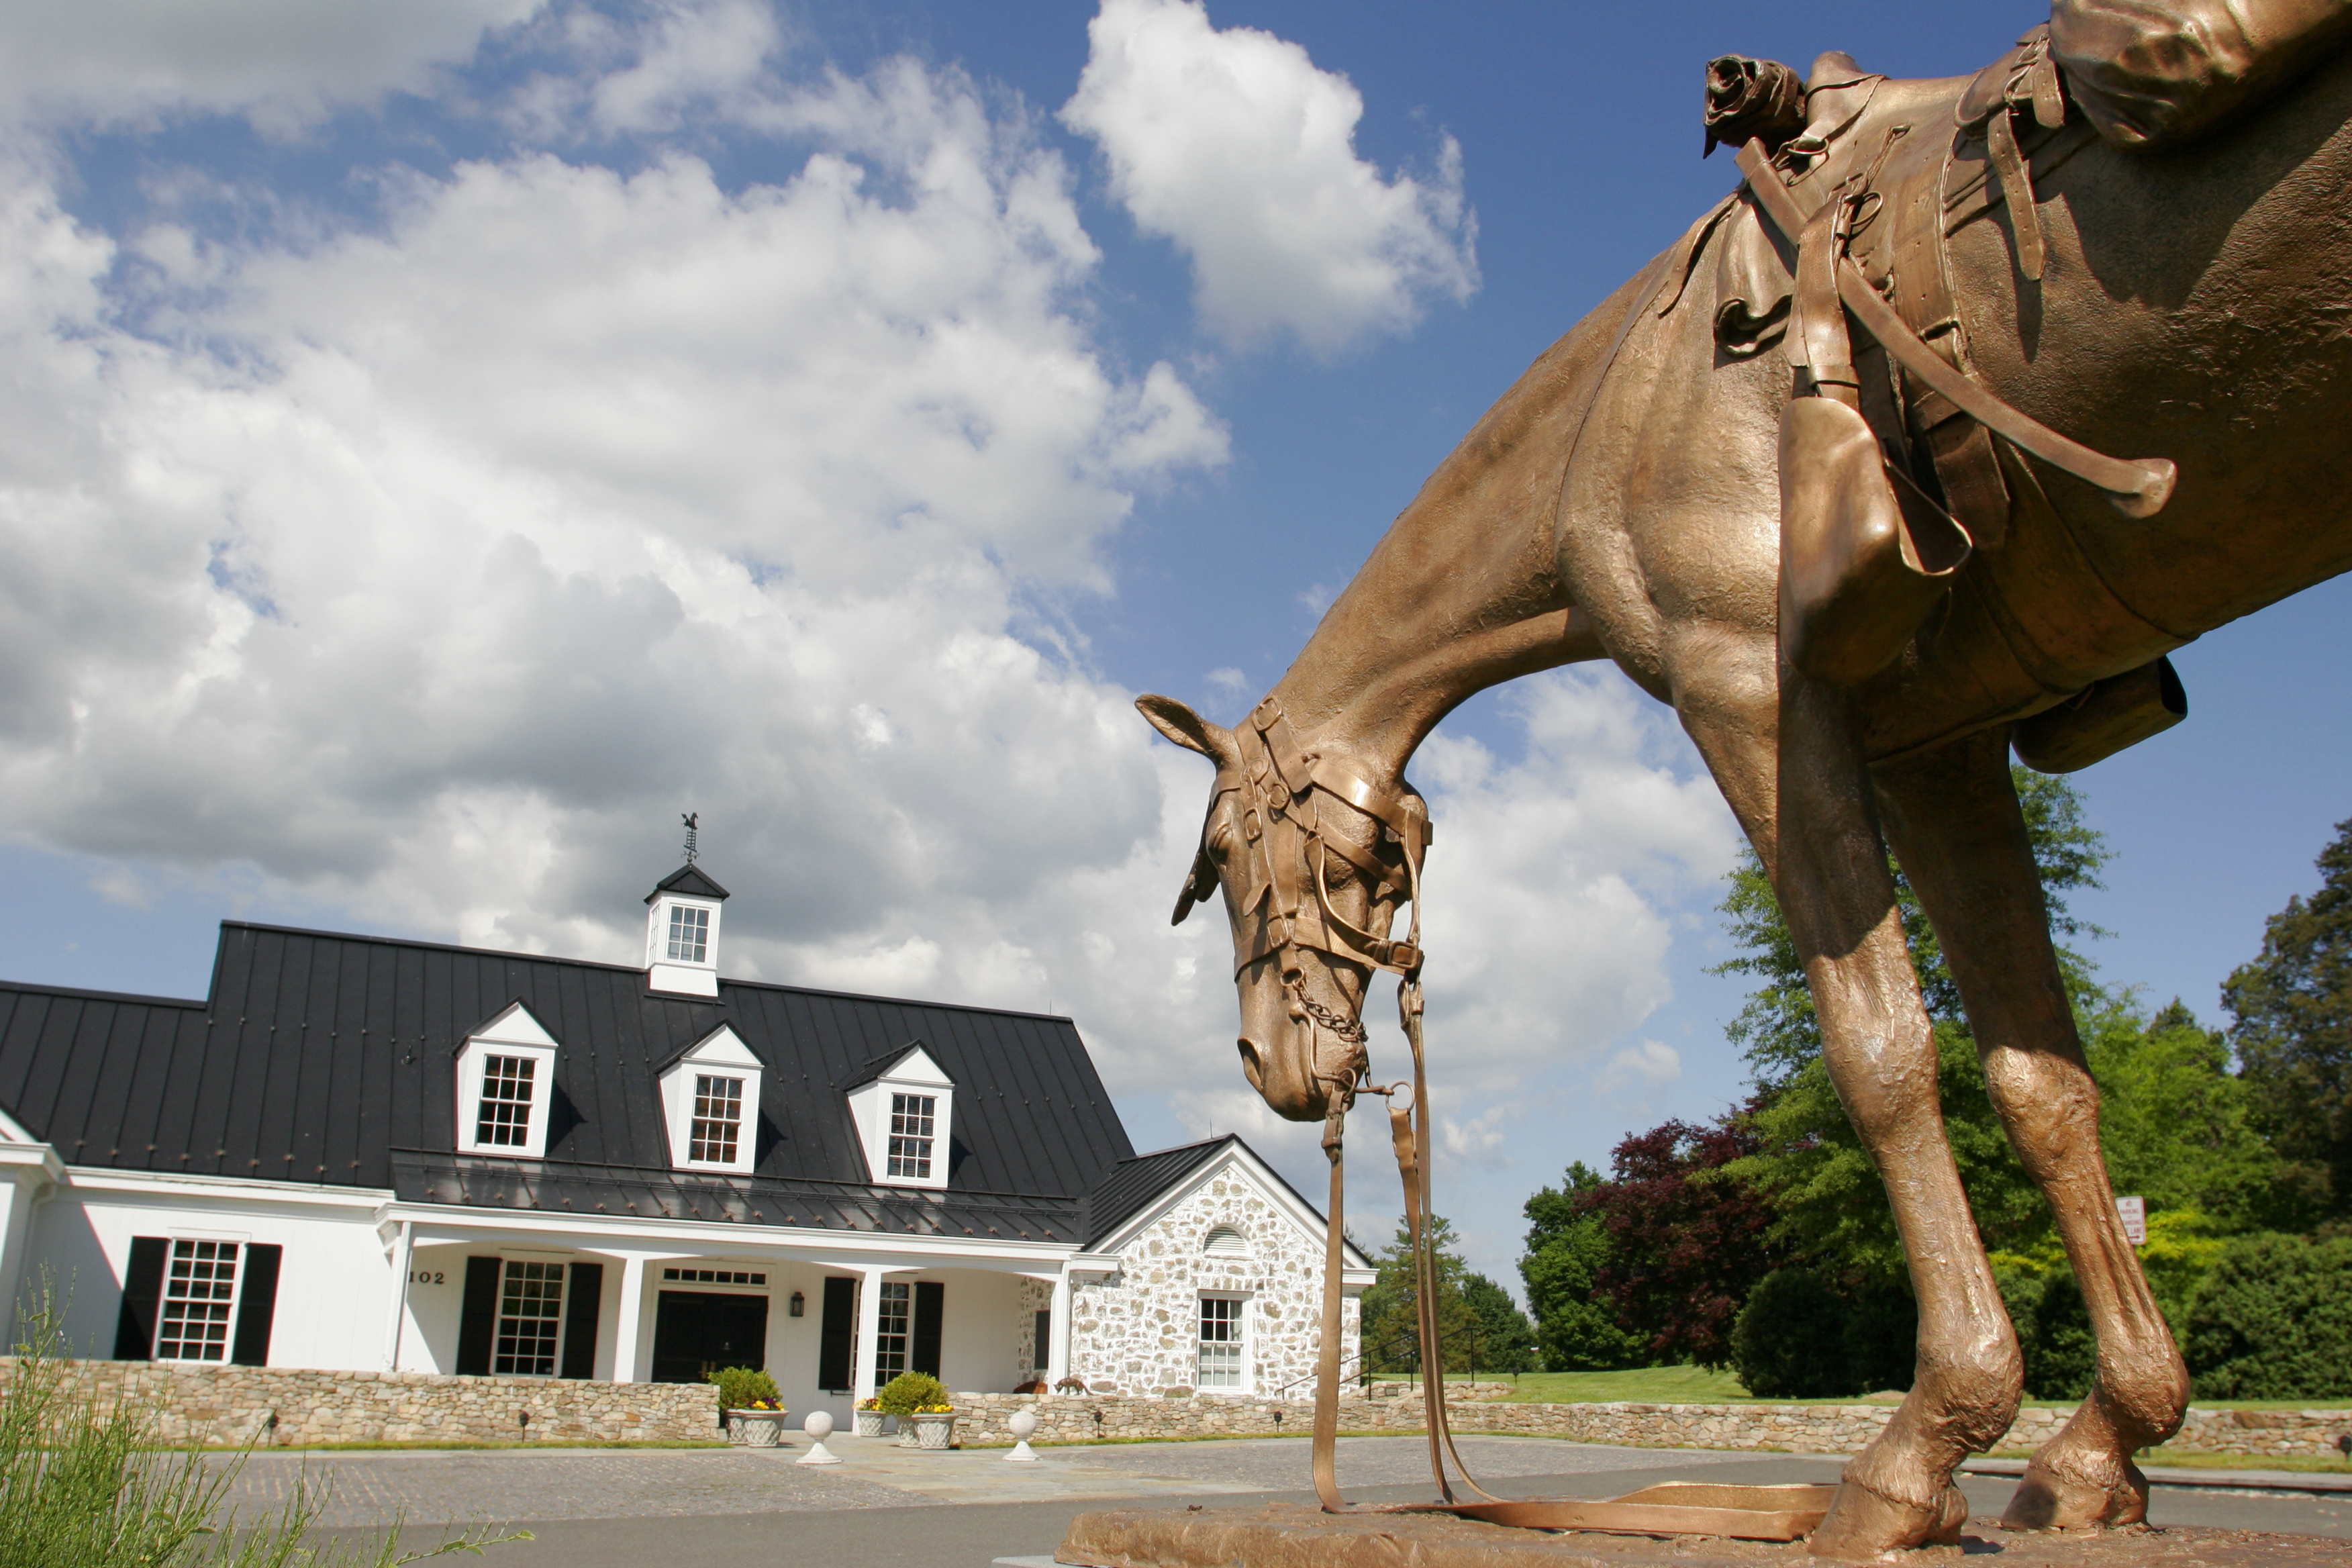 Virginia, Middleburg, National Horse and Hound Sporting Library, Civil War Horse and Mule Memorial, statue,